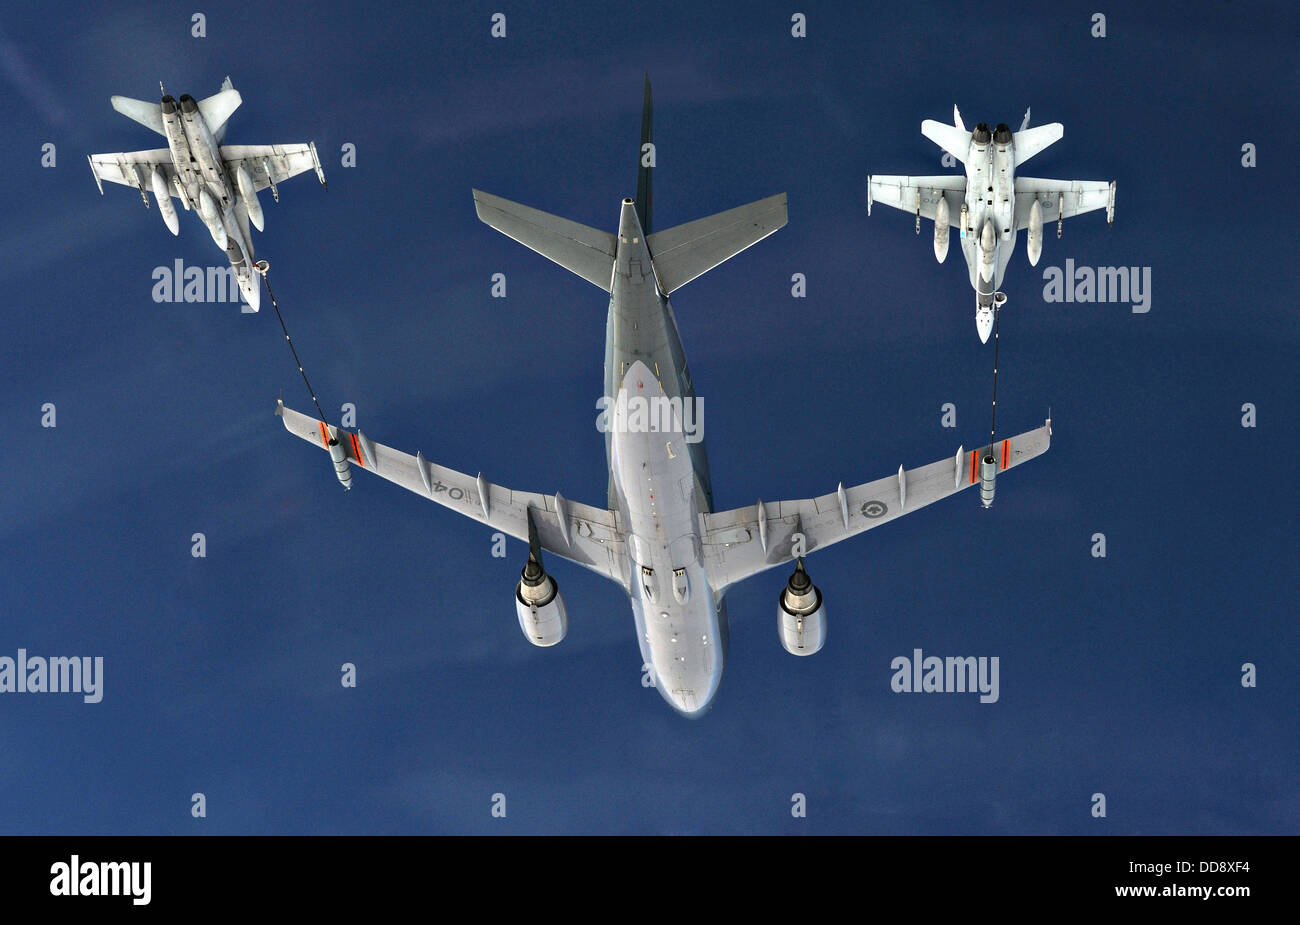 A Canadian Air Force CC-150 Polaris Airbus refueling aircraft from 437 Squadron Trenton provides air-to-air refueling Stock Photo